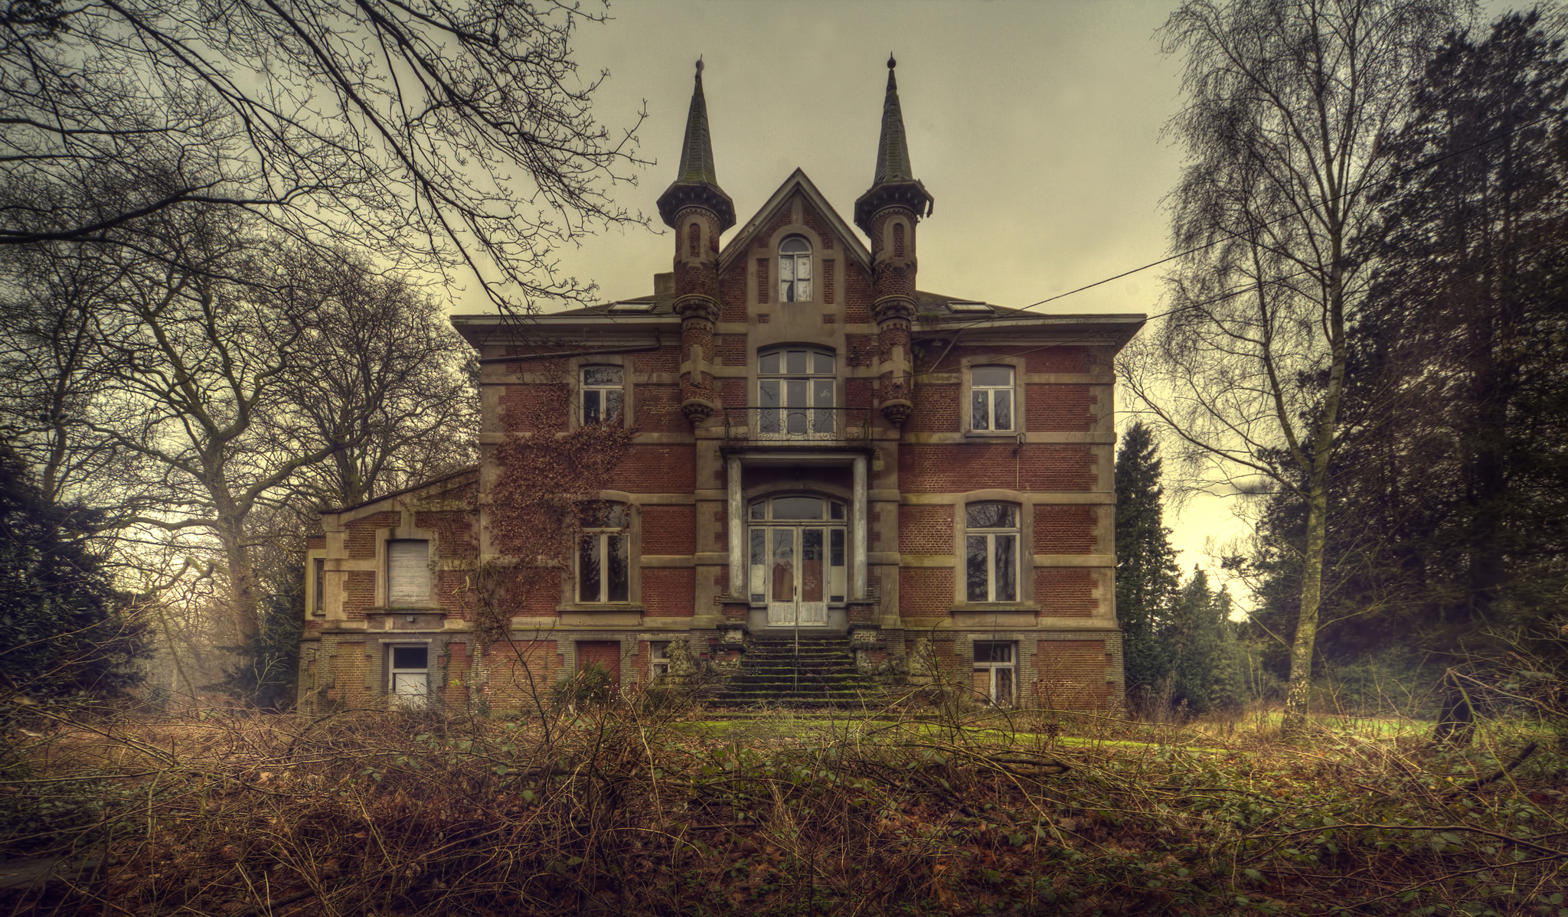 Abandoned Manors England Old Abandoned Manor House With